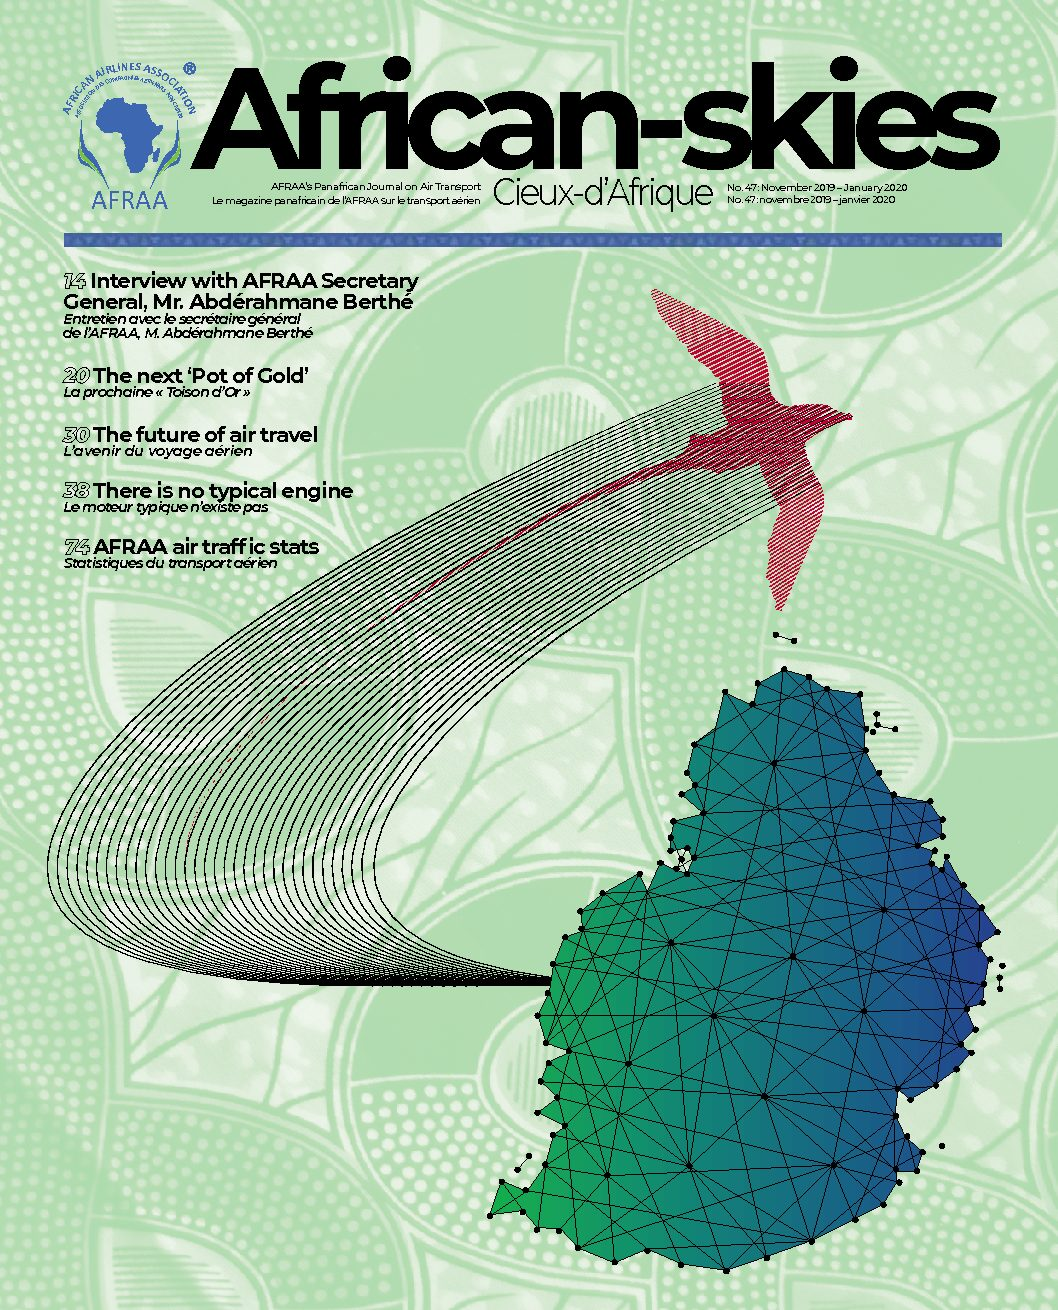 African-Skies Issue 47